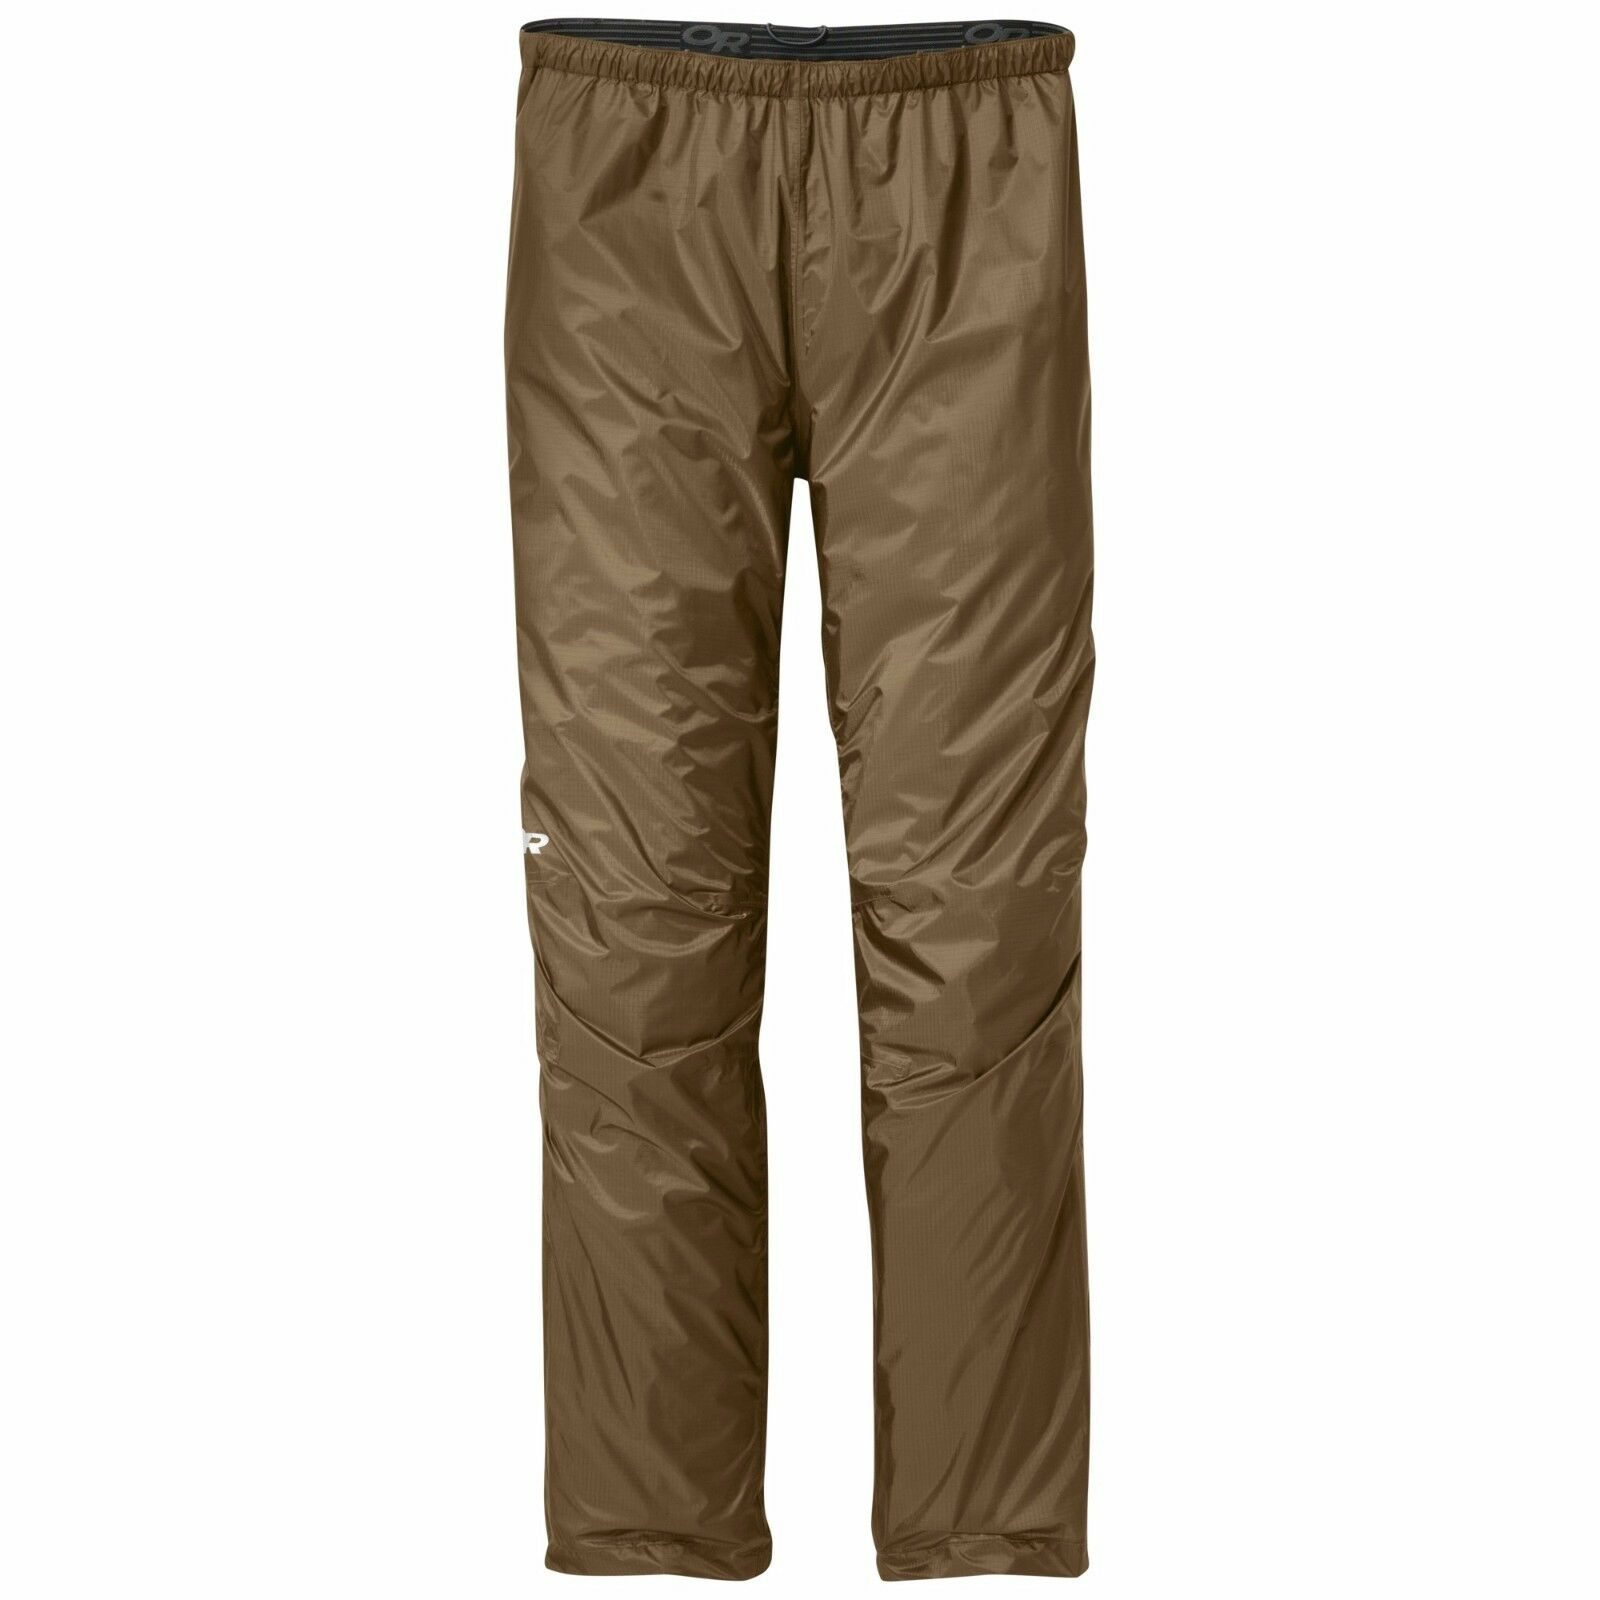 Outdoor Research Helium Pants  Coyote  with 60% off discount